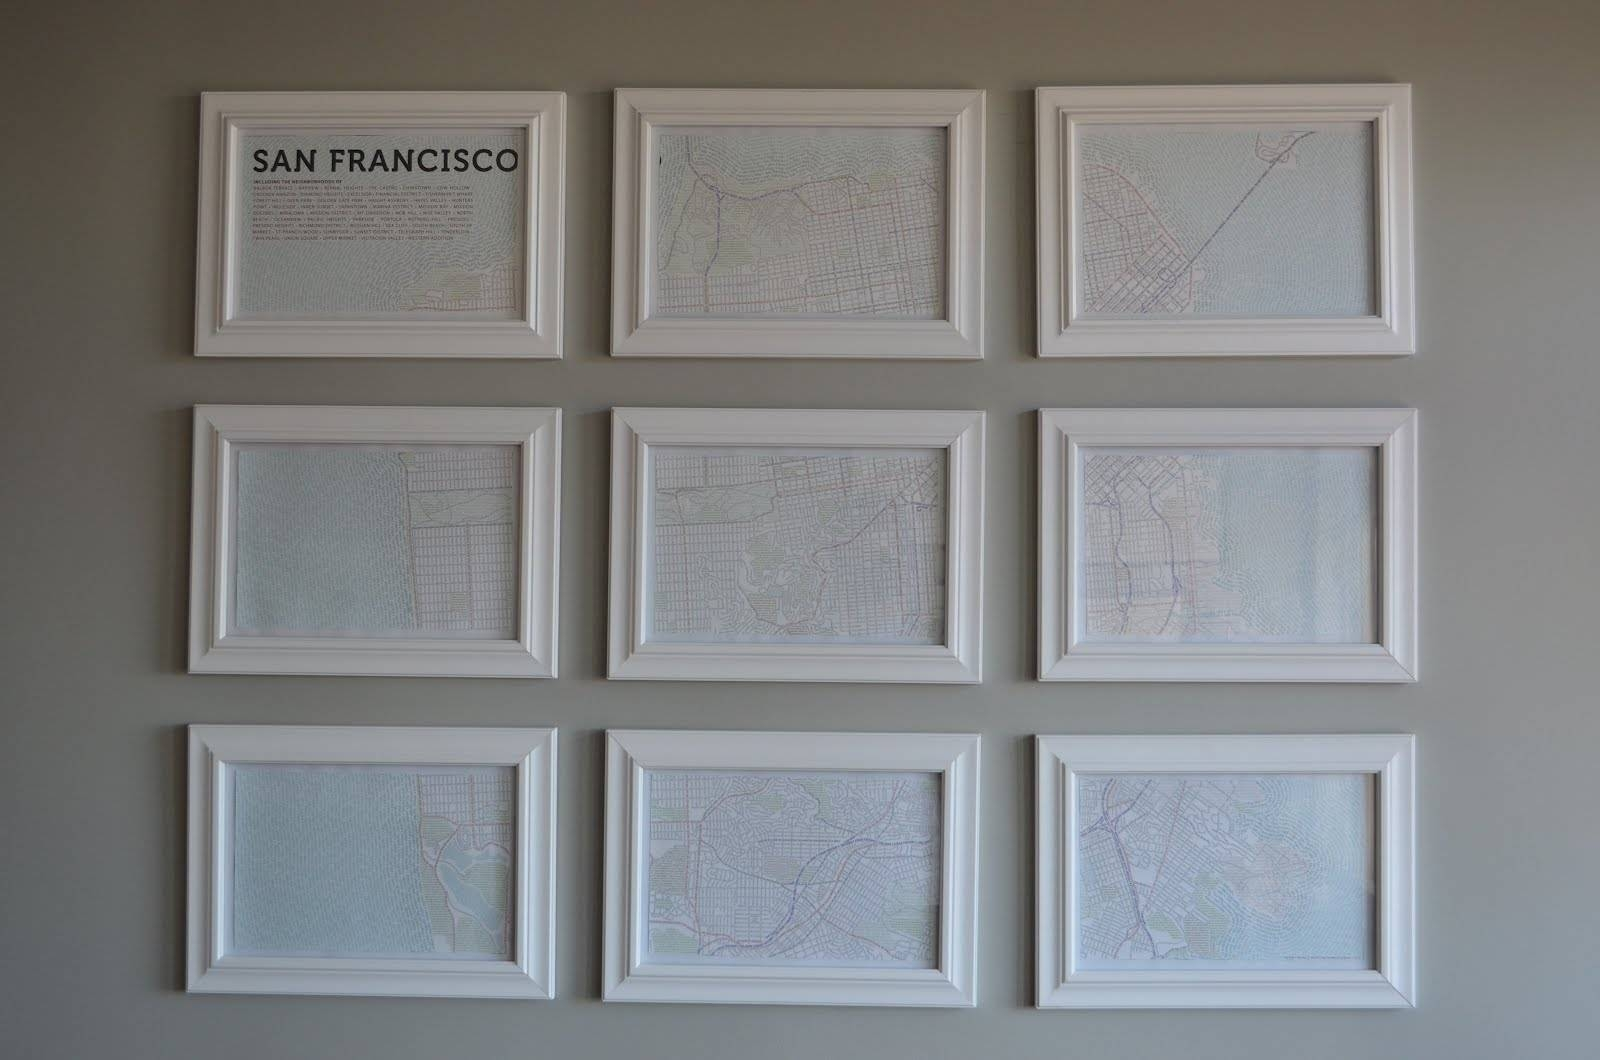 Map Wall Art Diy | They So Loved Events | Wine Country & San Throughout 2018 San Francisco Map Wall Art (View 4 of 20)